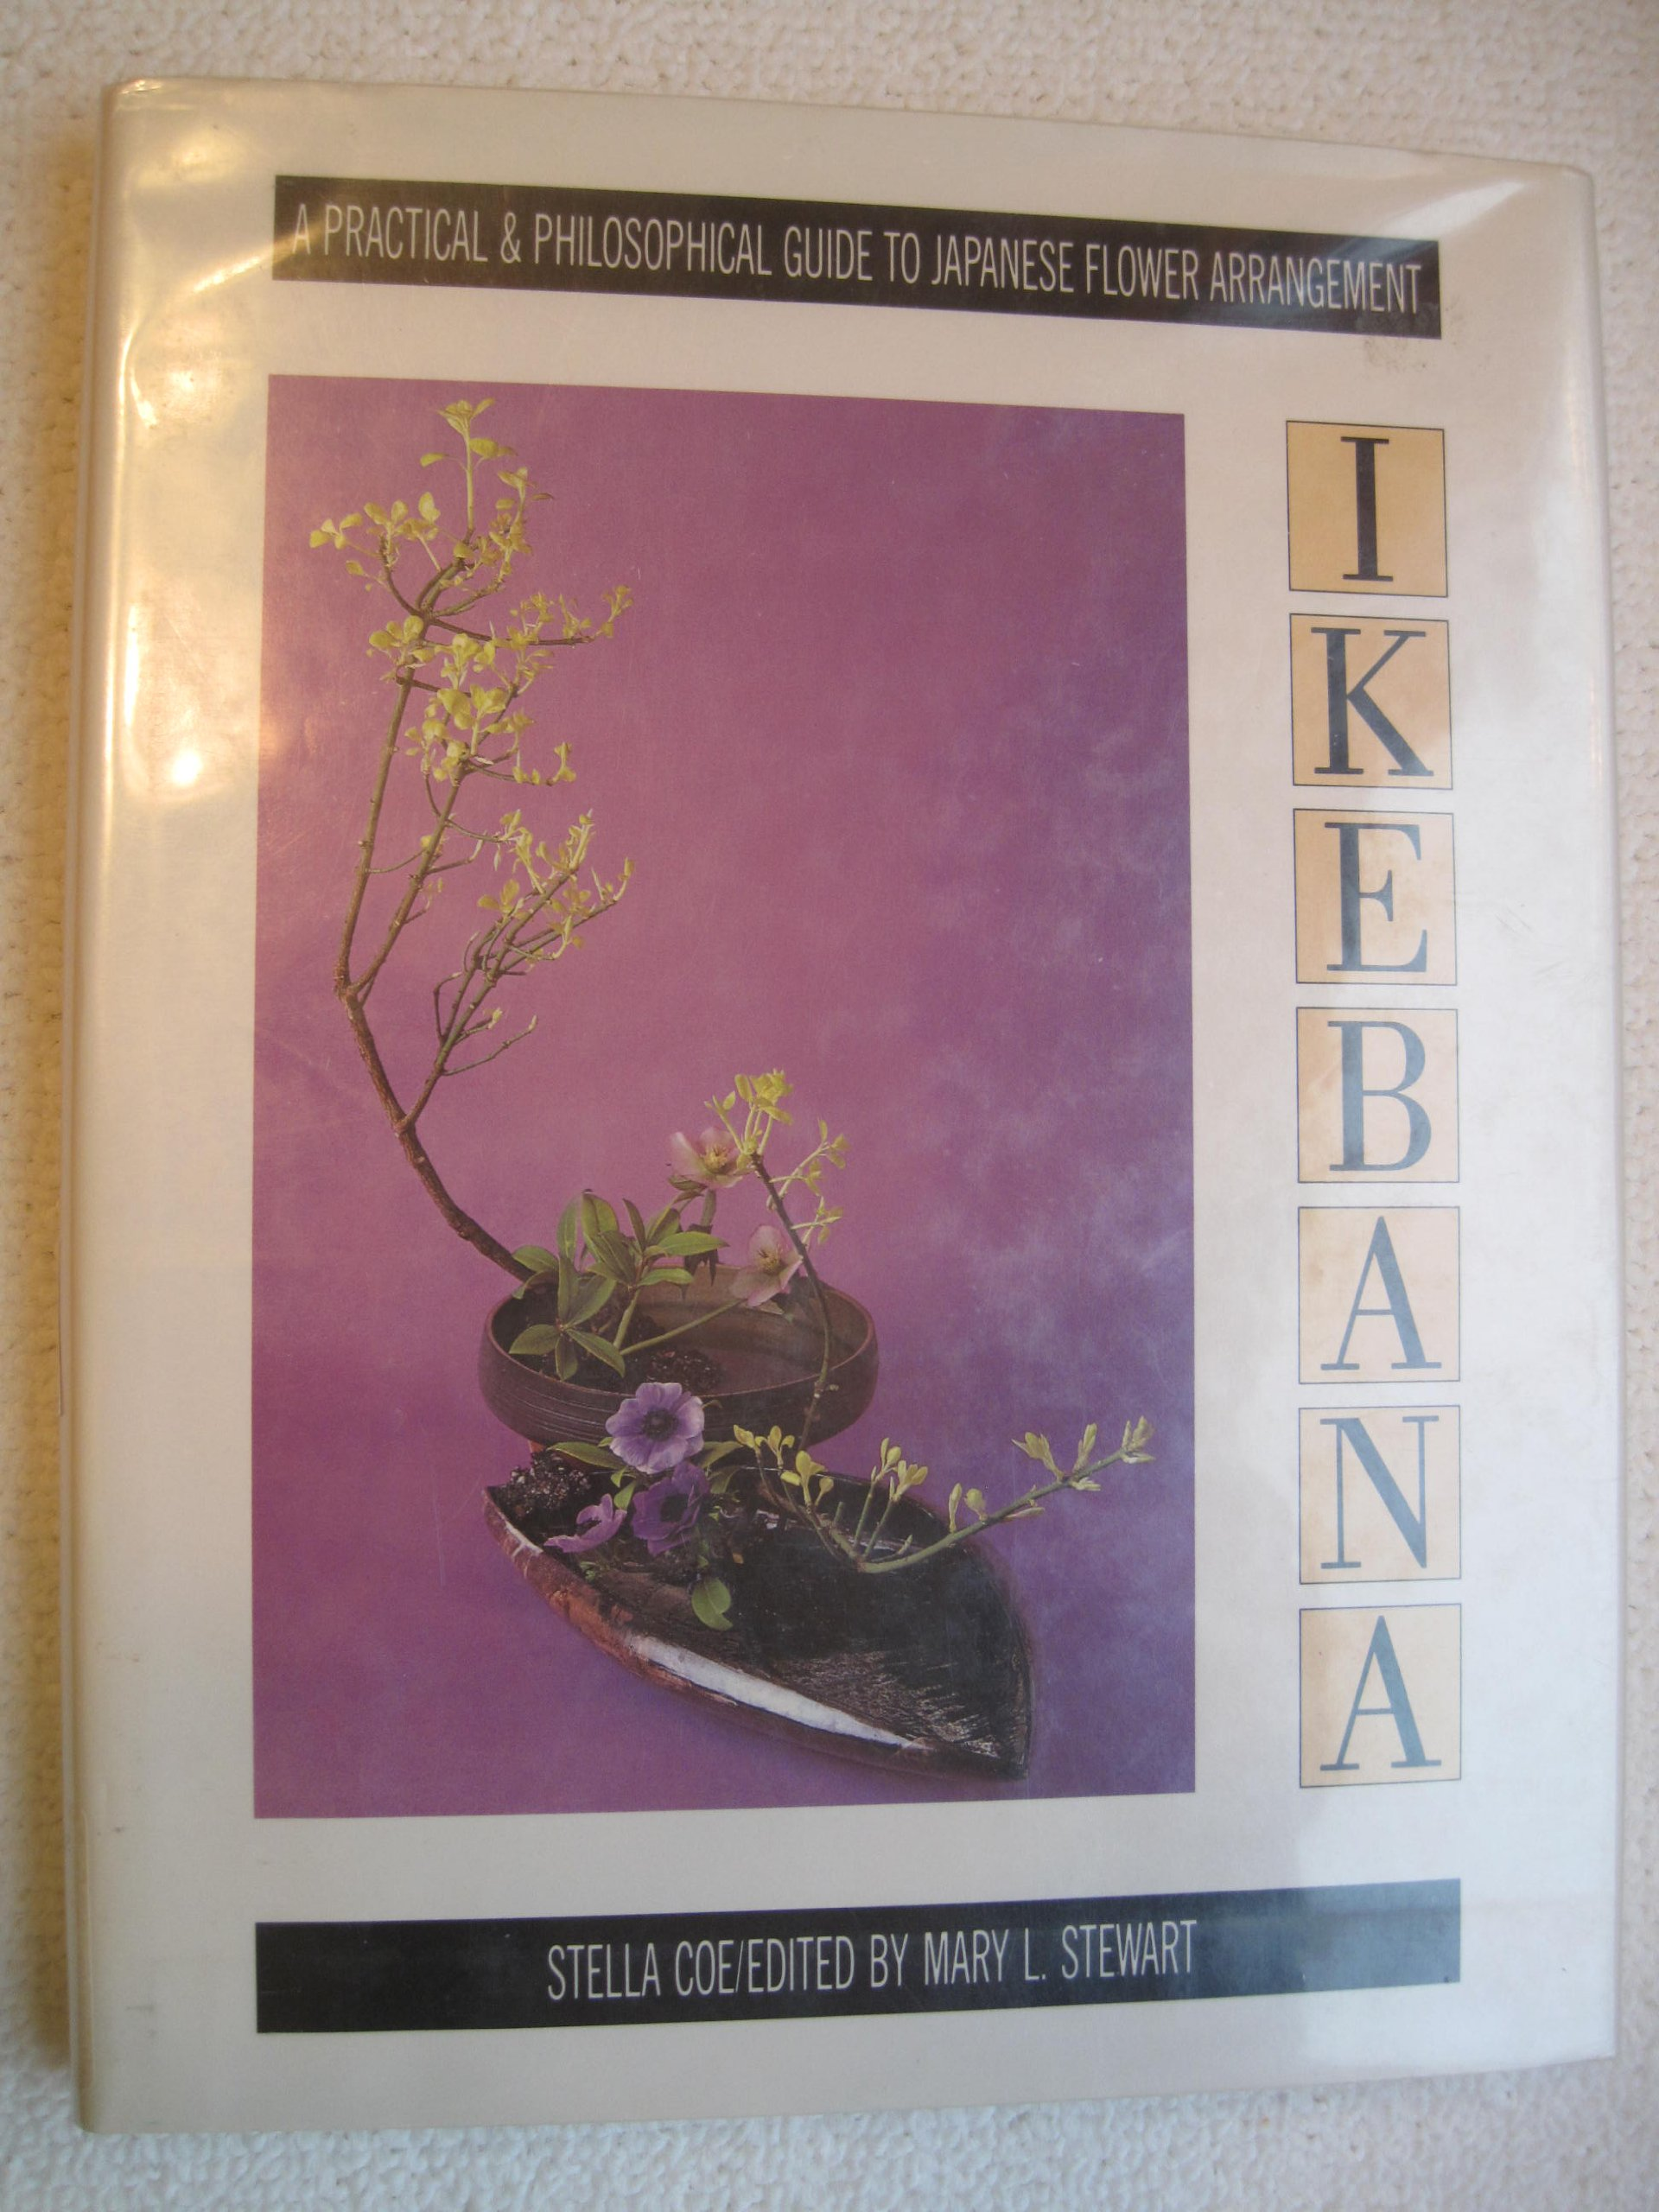 Ikebana : a practical and philosophical guide to Japanese flower arrangement / Stella Coe ; edited by Mary L. Stewart